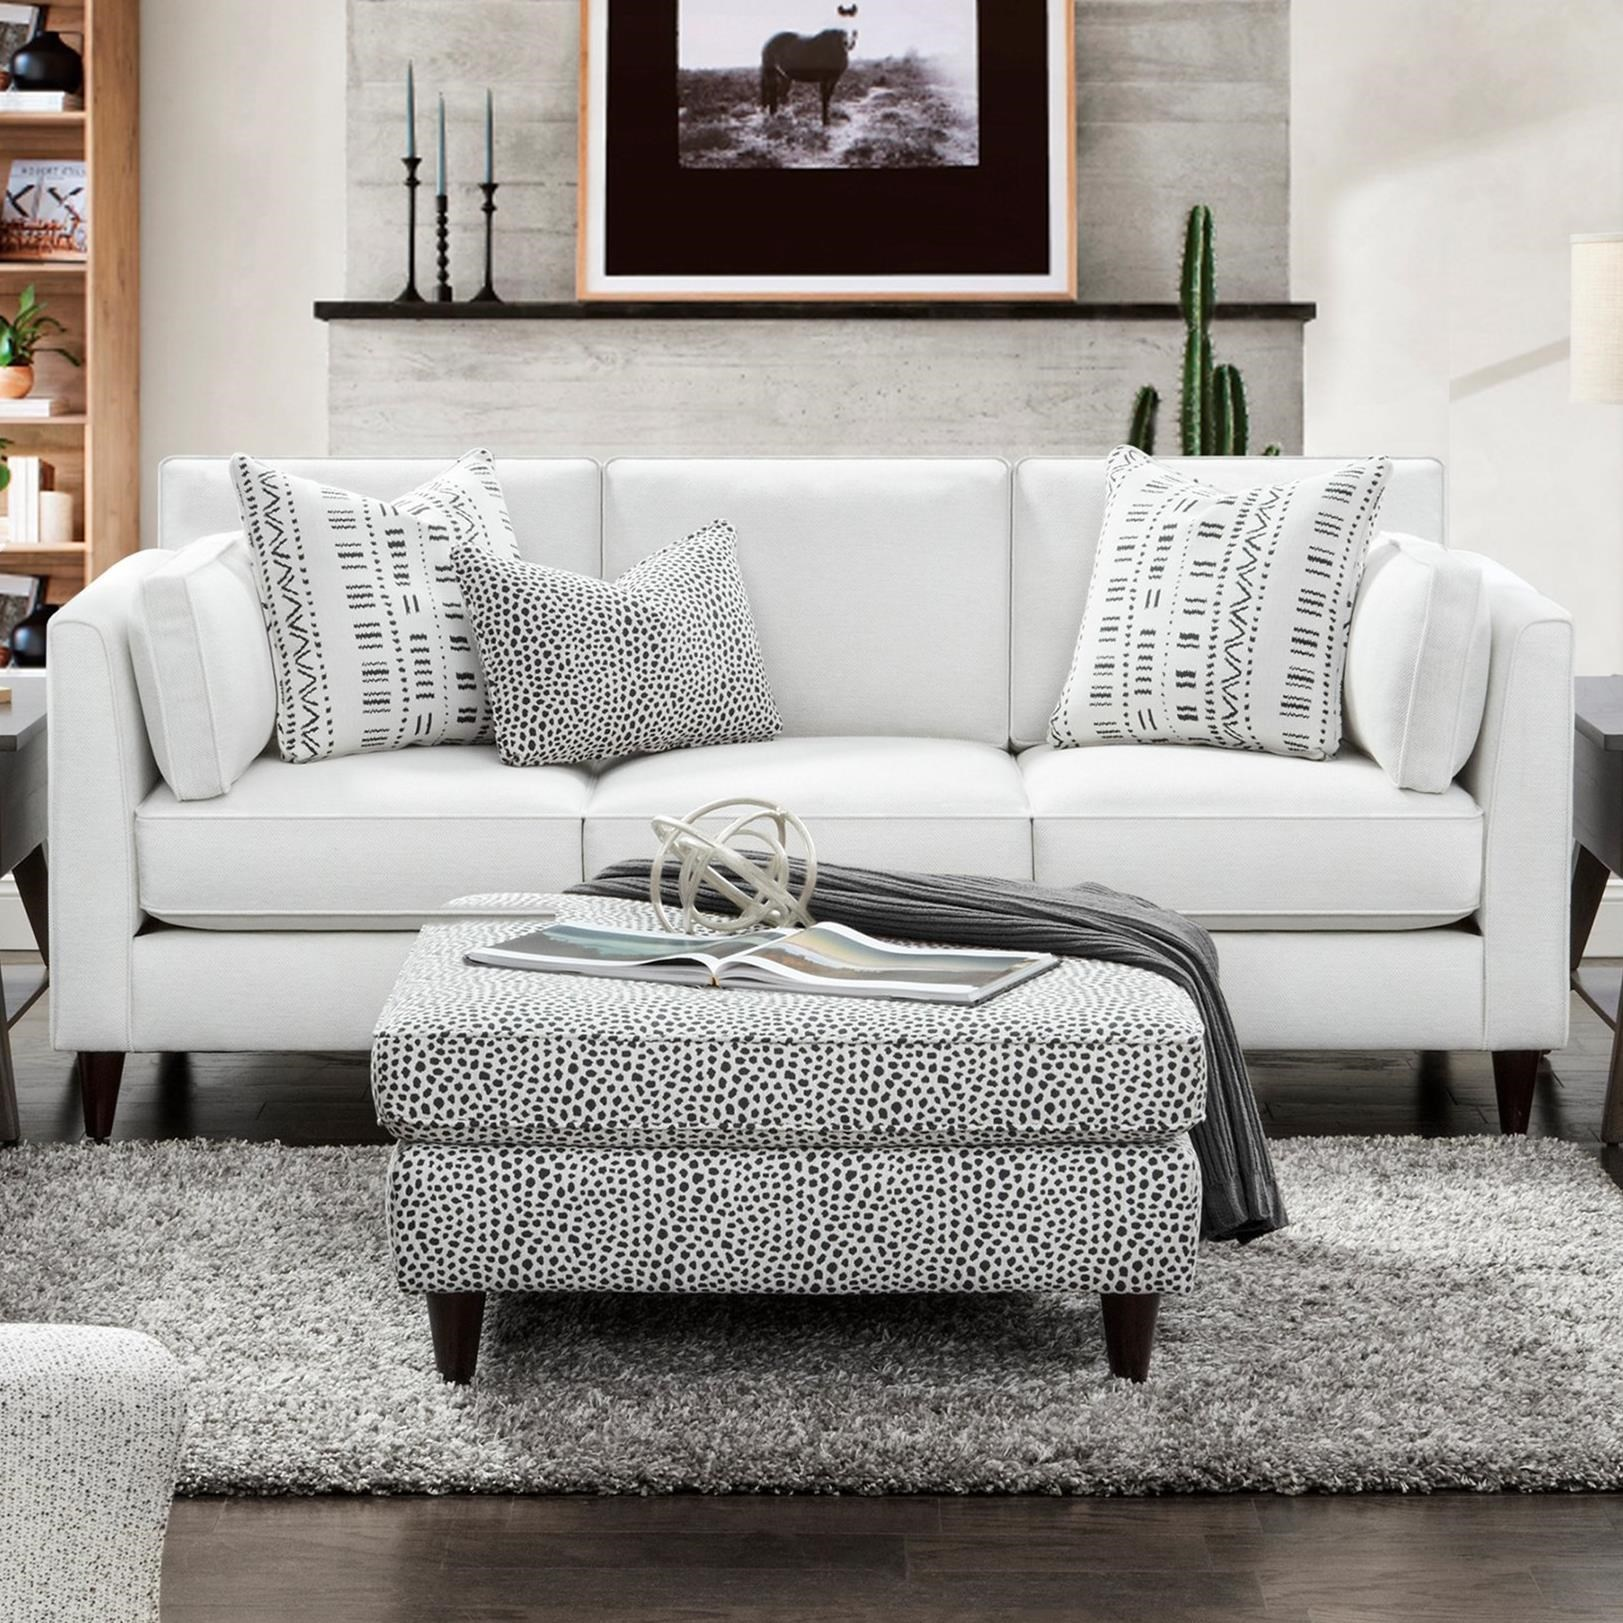 17-00 Sofa by Fusion Furniture at Furniture Superstore - Rochester, MN